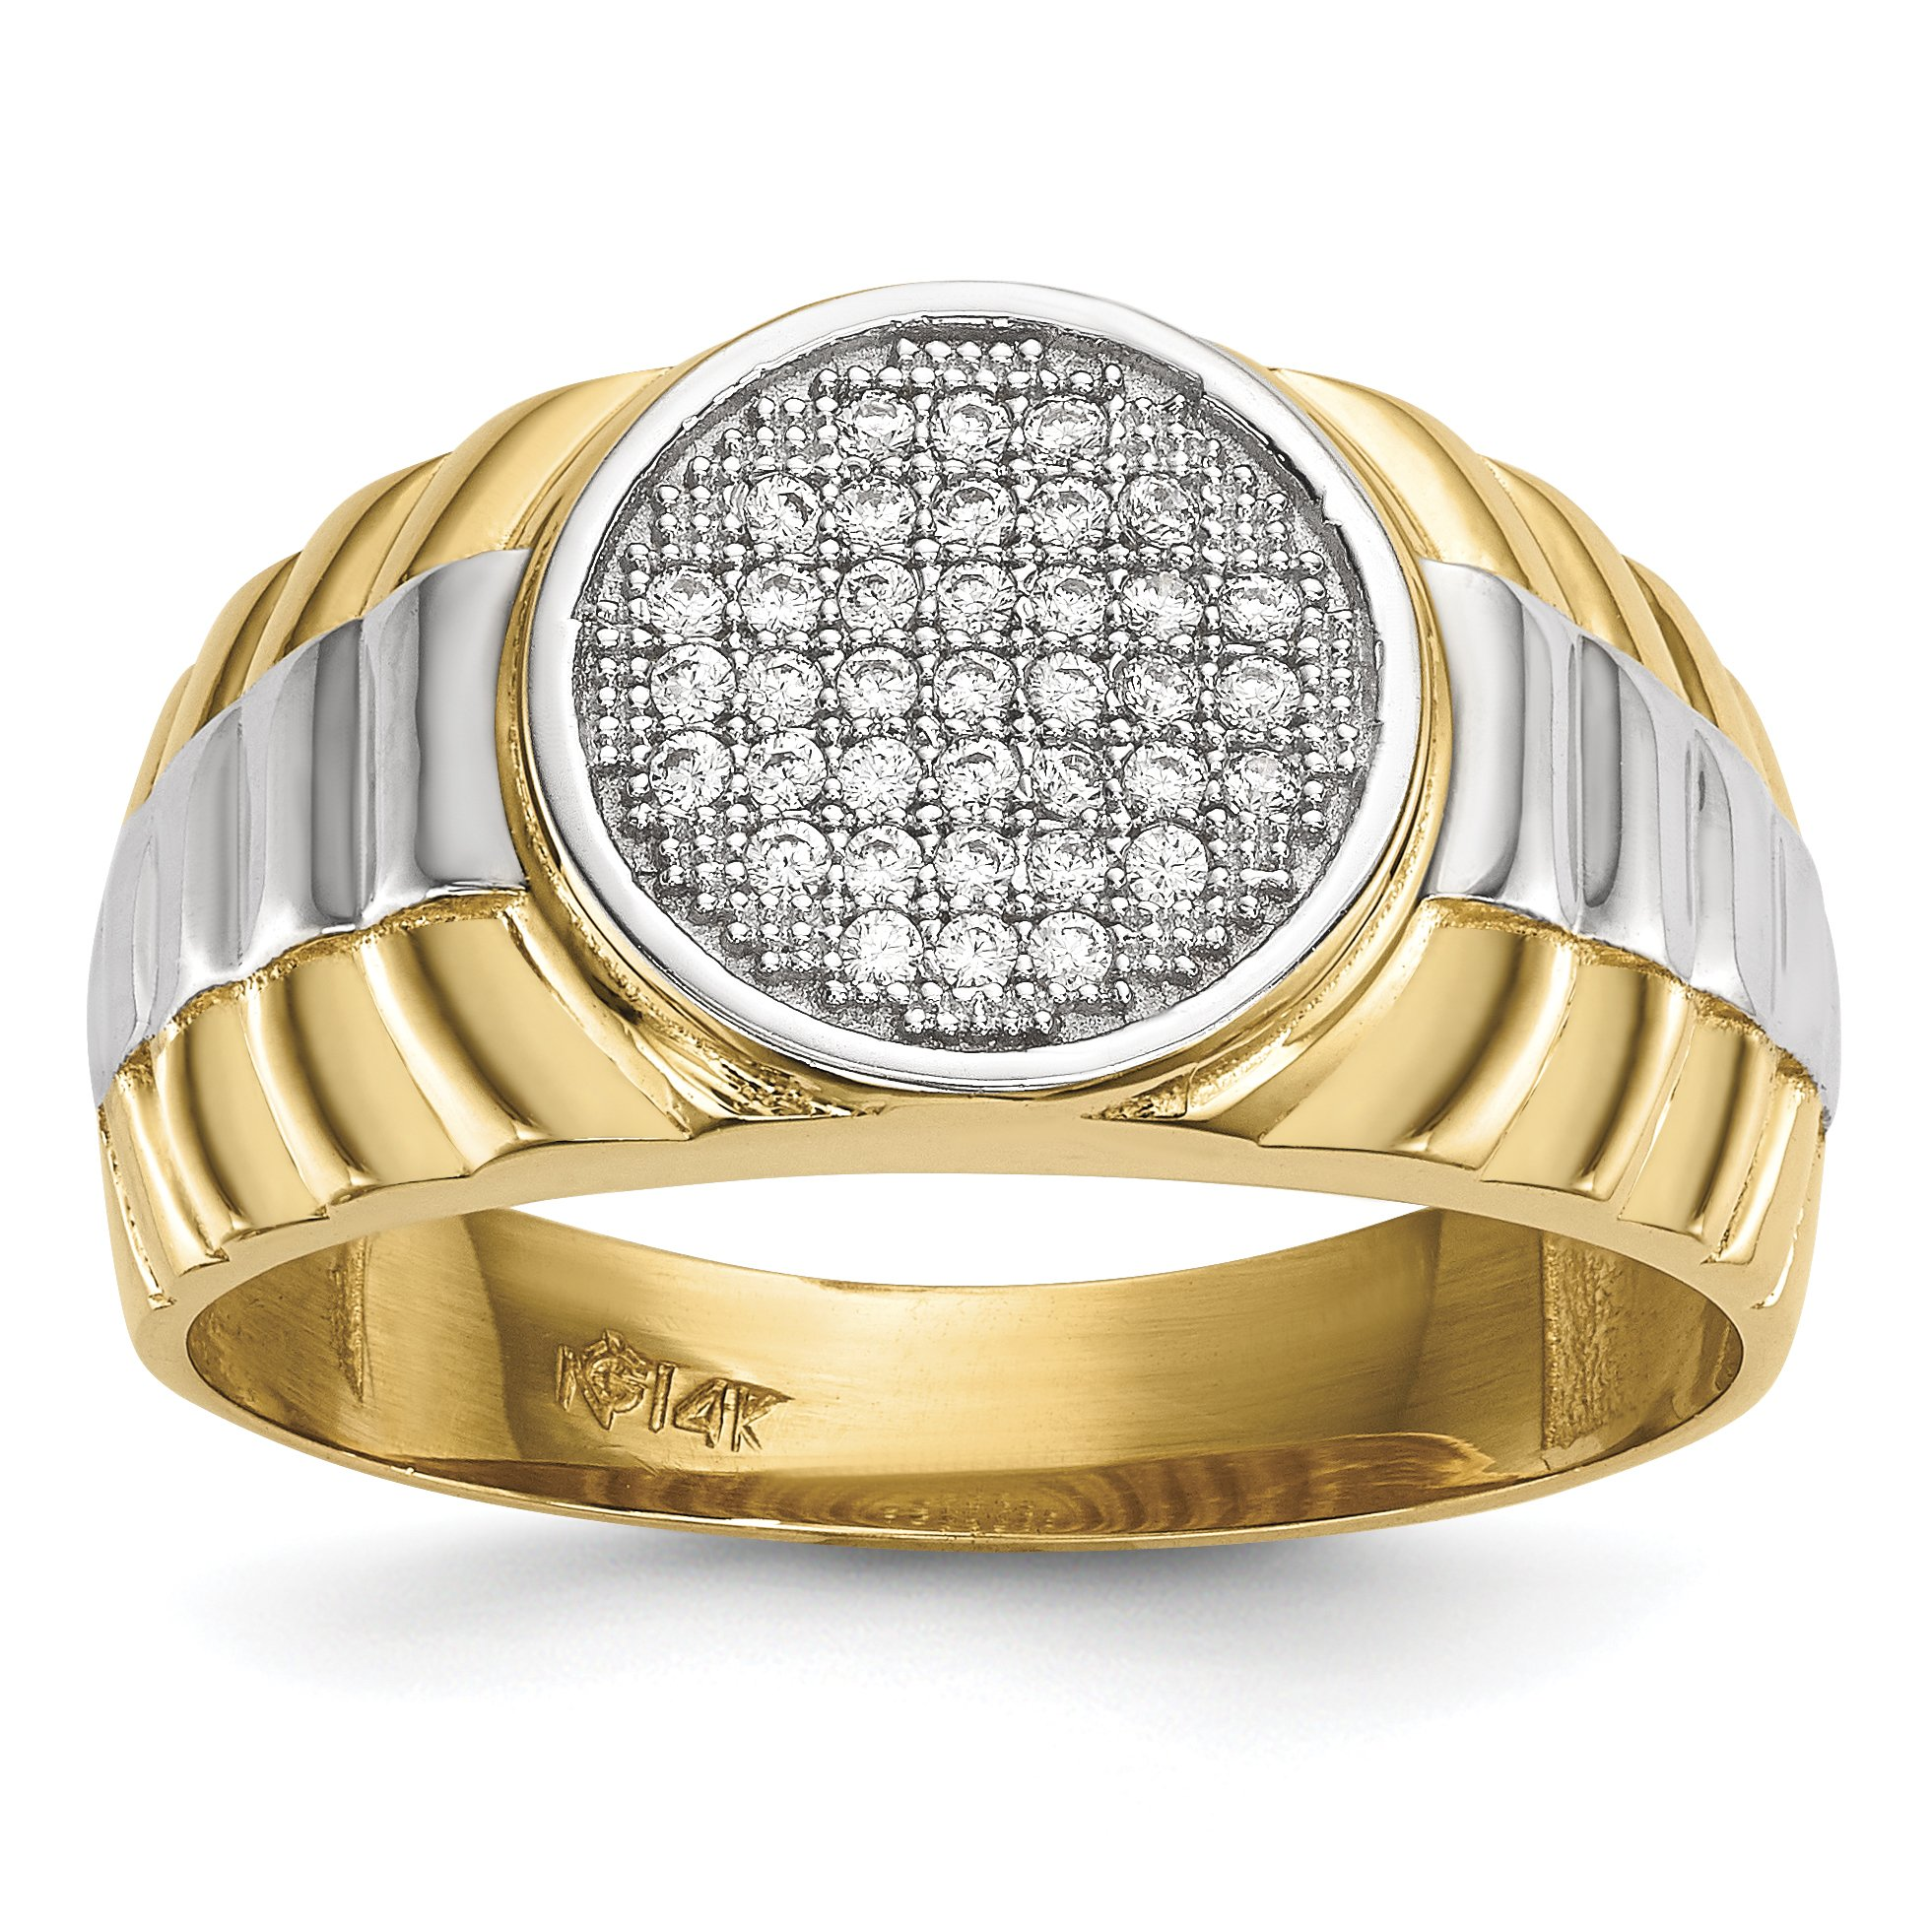 ICE CARATS 14k Yellow Gold Mens Micro Cubic Zirconia Cz Round Band Ring Size 10.00 Signet Fine Jewelry Dad Mens Gift Set